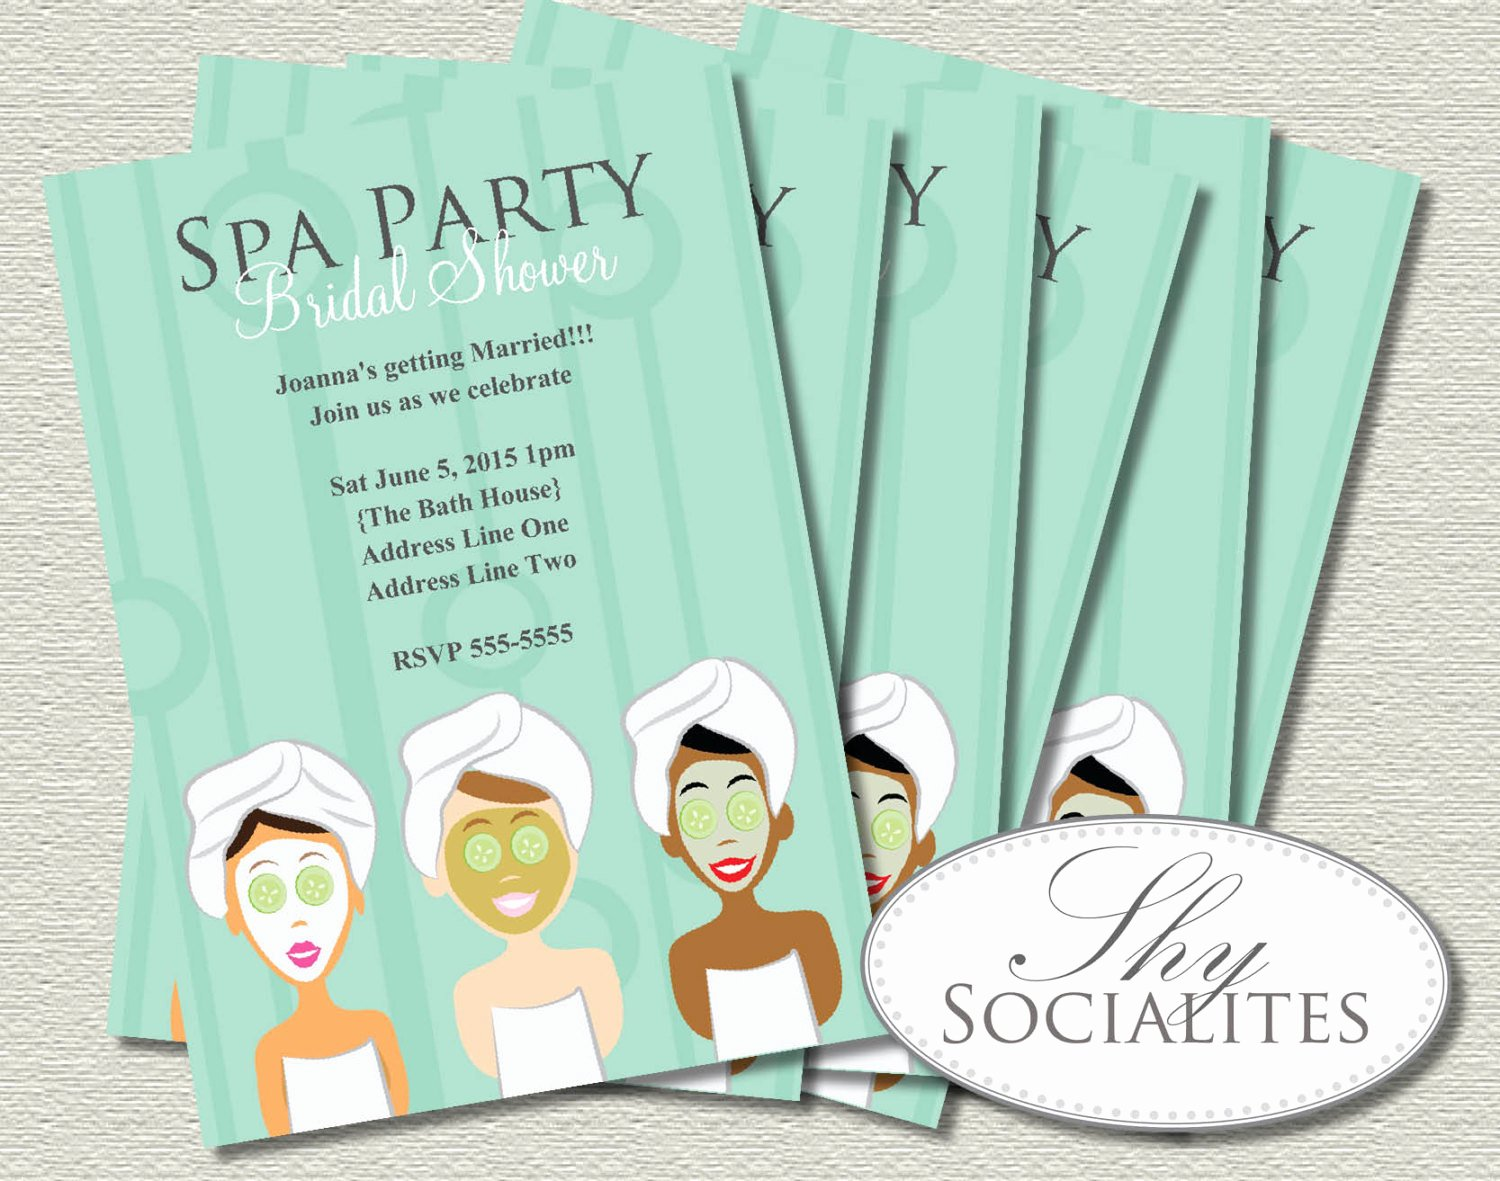 Spa Day Invitation Luxury Spa Party Invitation Pedicure Pamper Manicure Spa Day